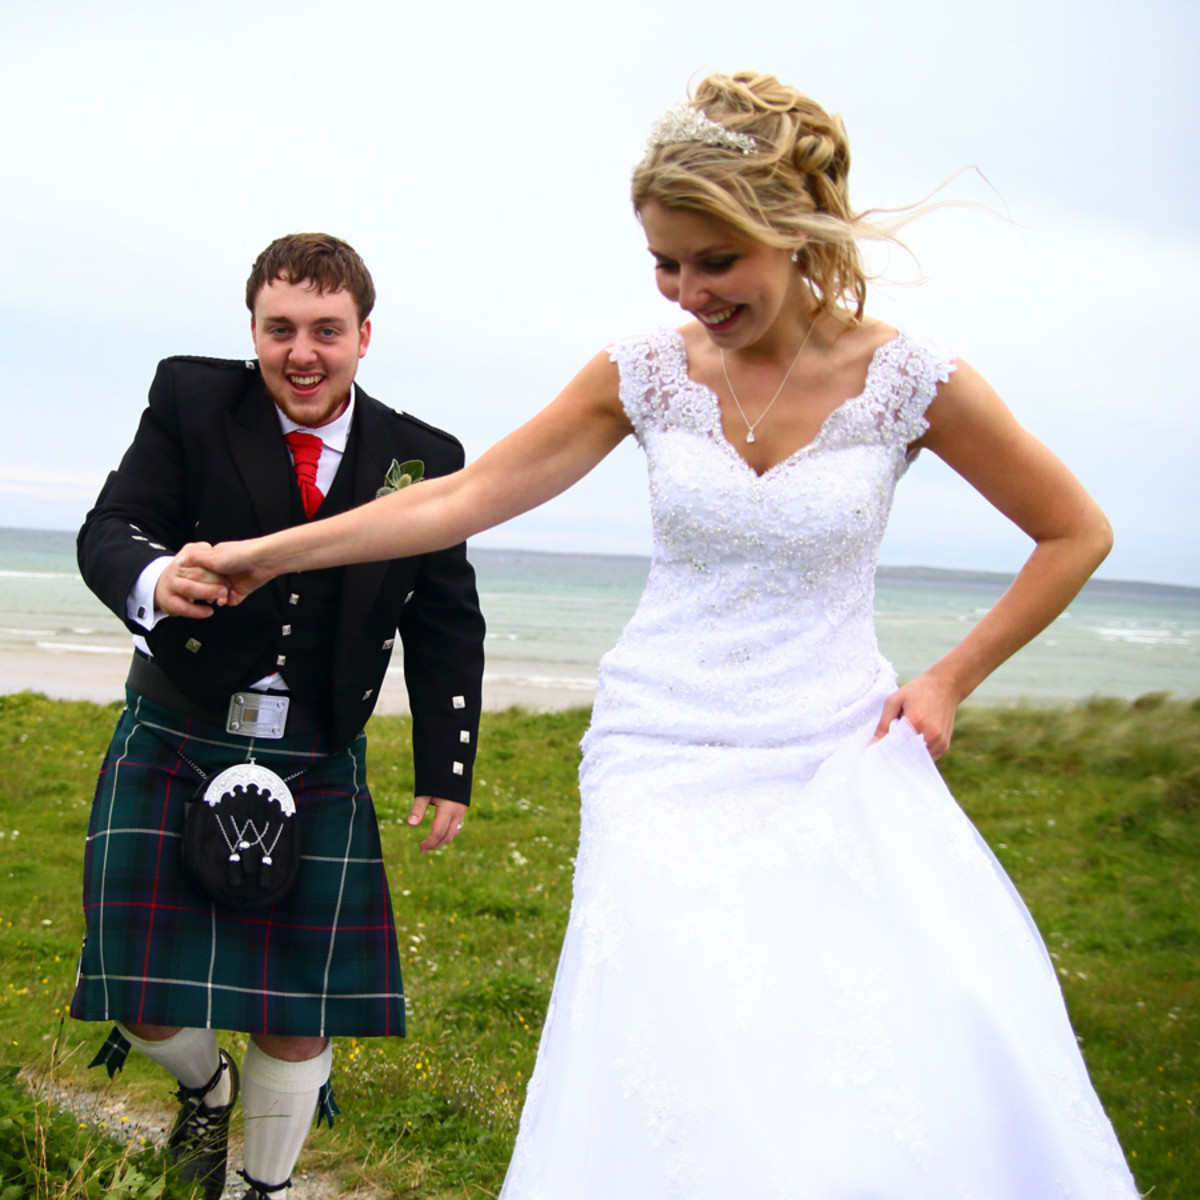 Displaying non-standard/fun wedding shots will get your business noticed and remembered.